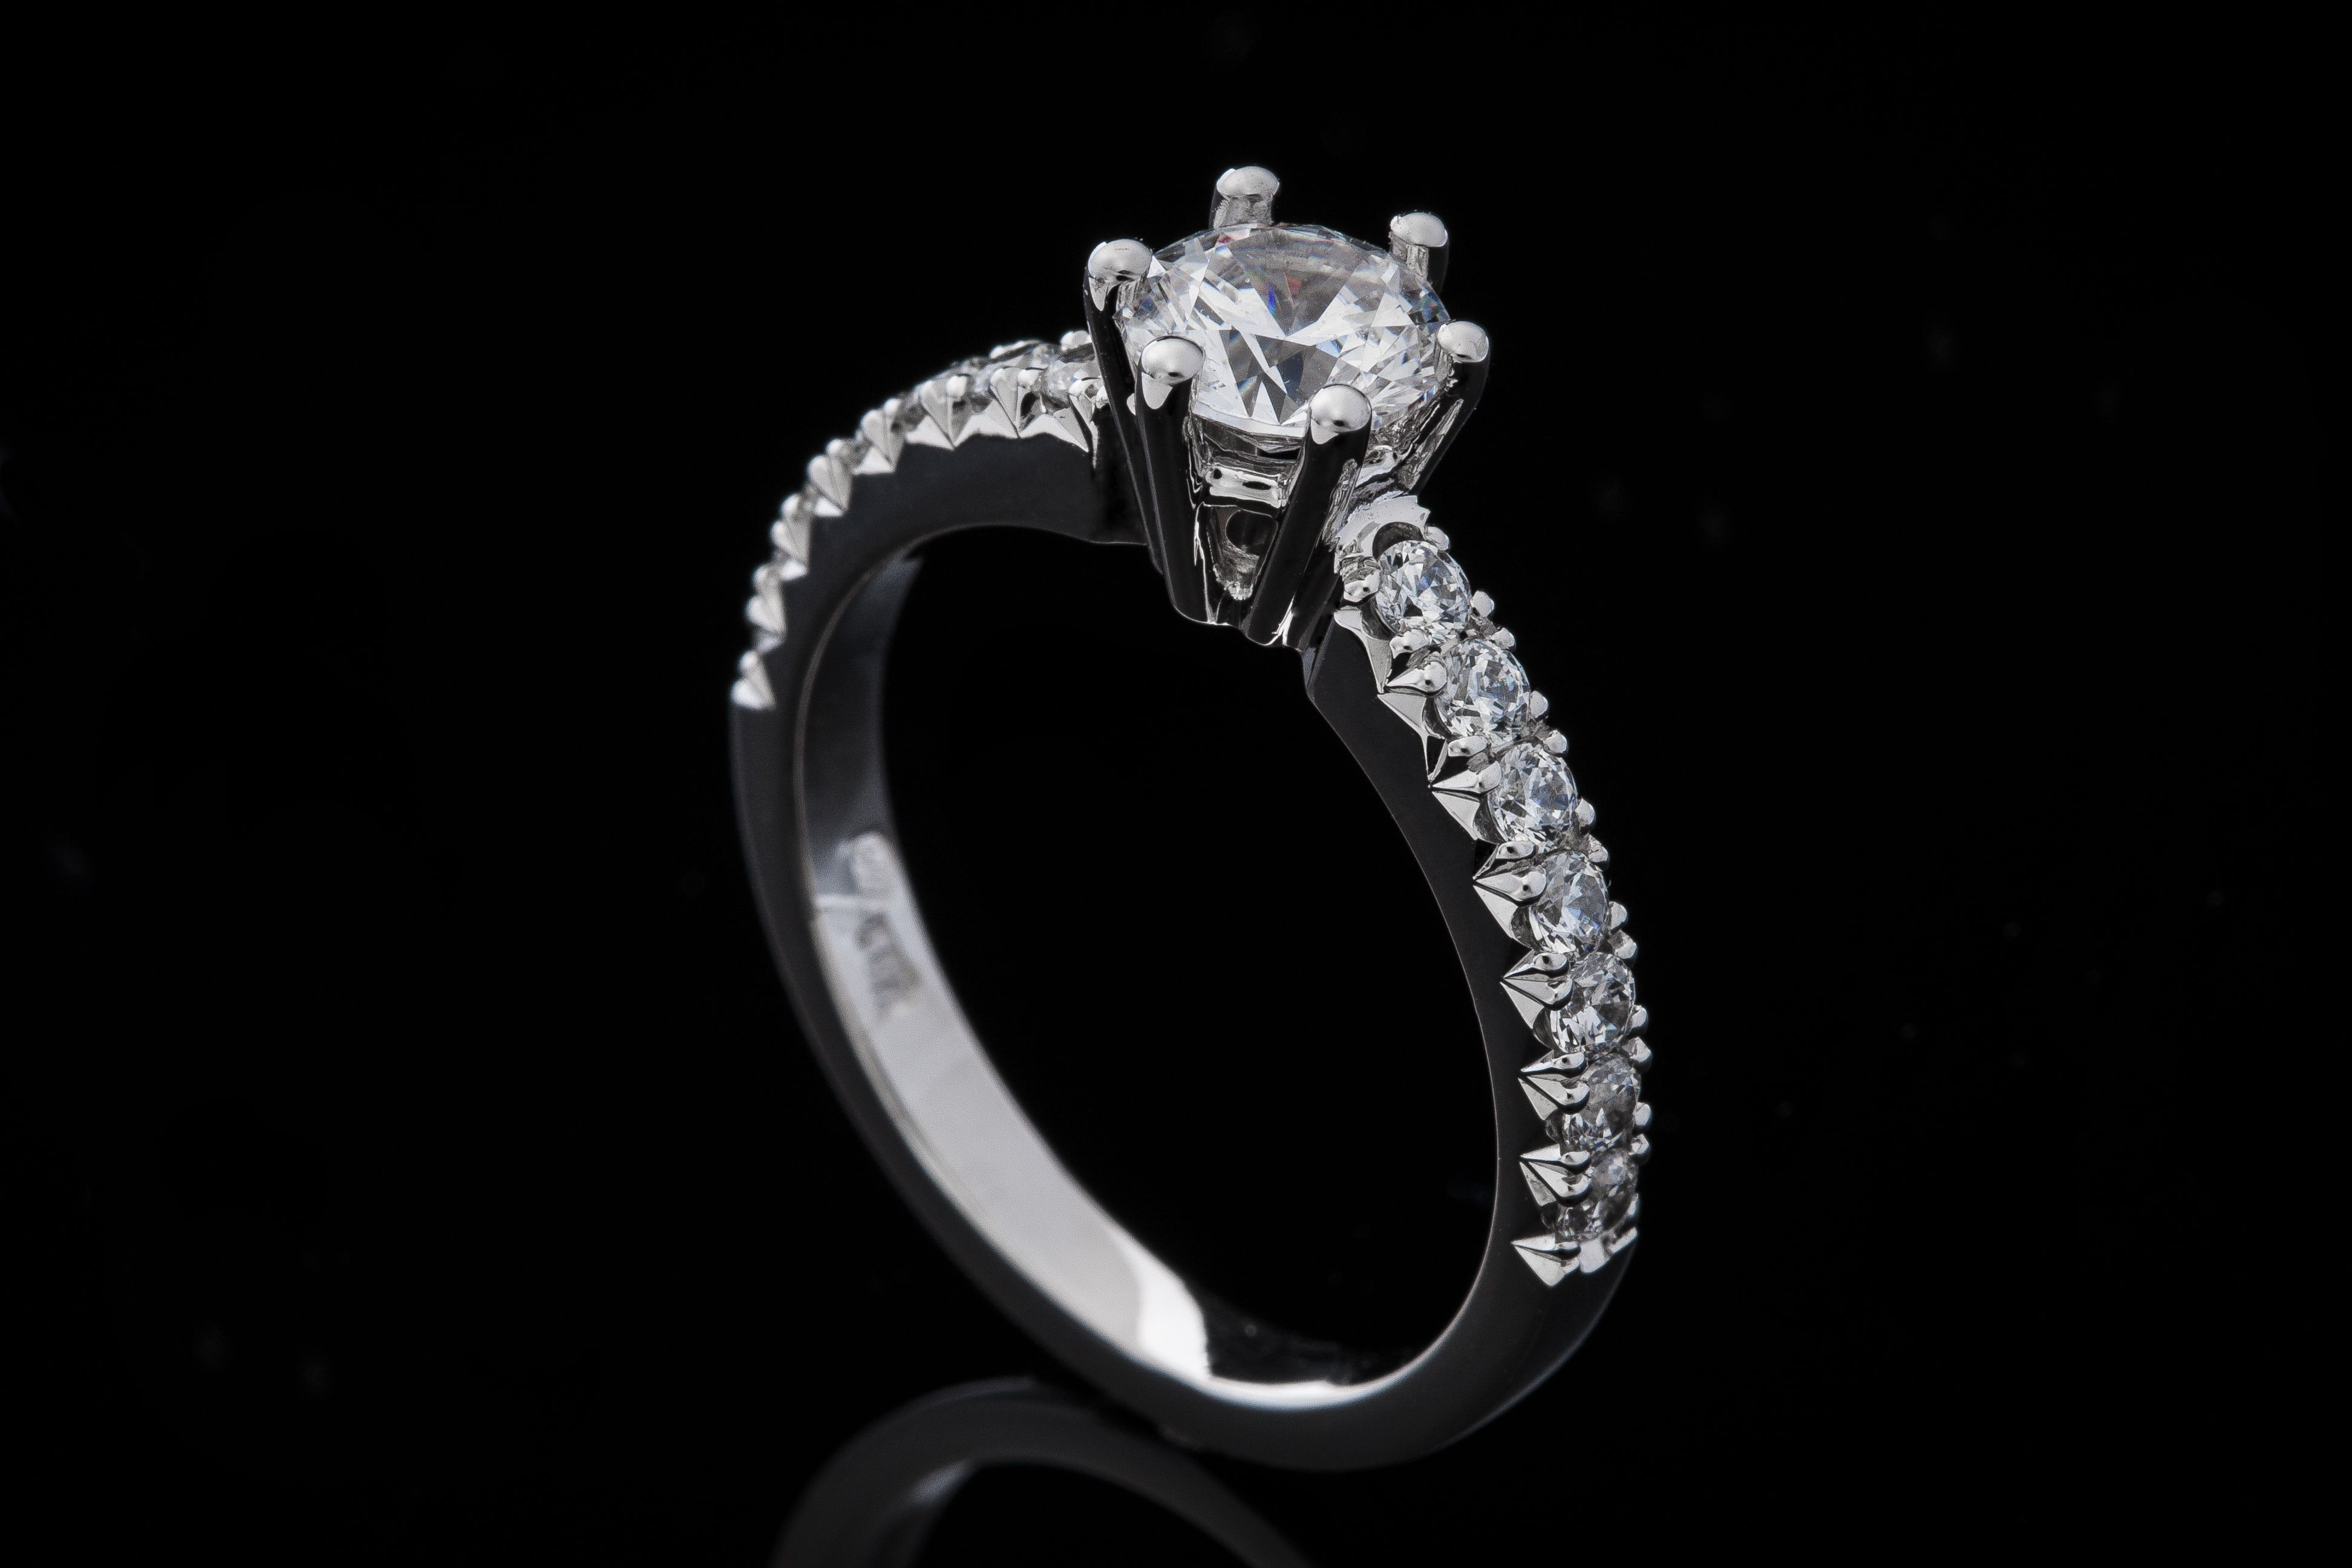 Handcrafted solitaire engagement ring with diamonds